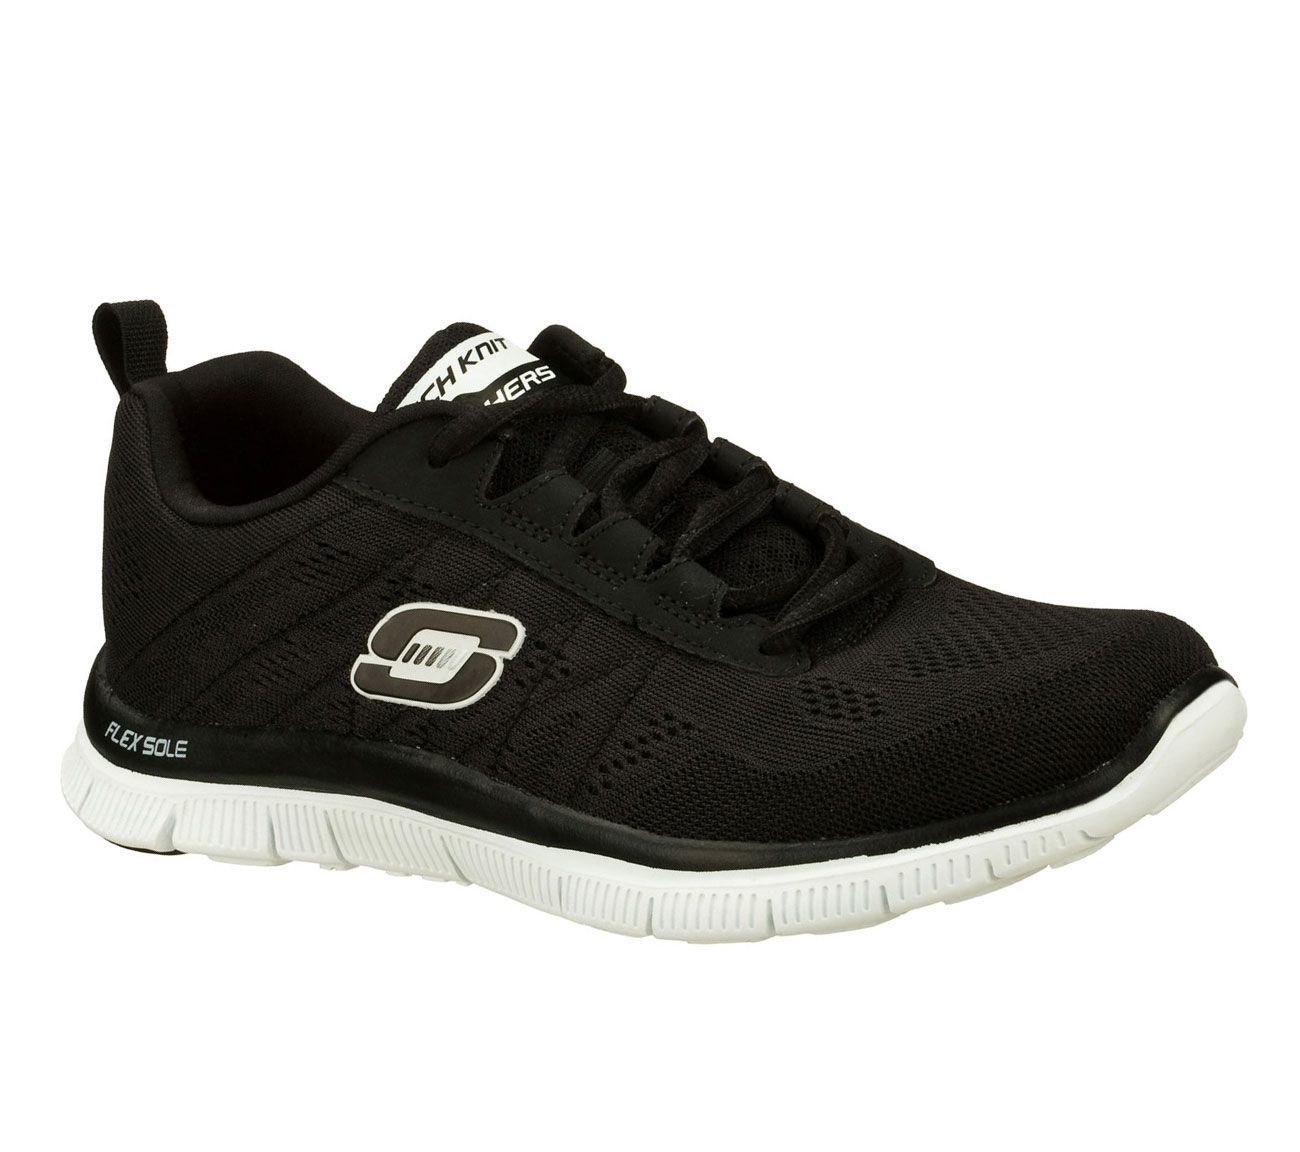 Skechers Get Connected Memory Foam Womens Running Shoes Fitness Trainers Black